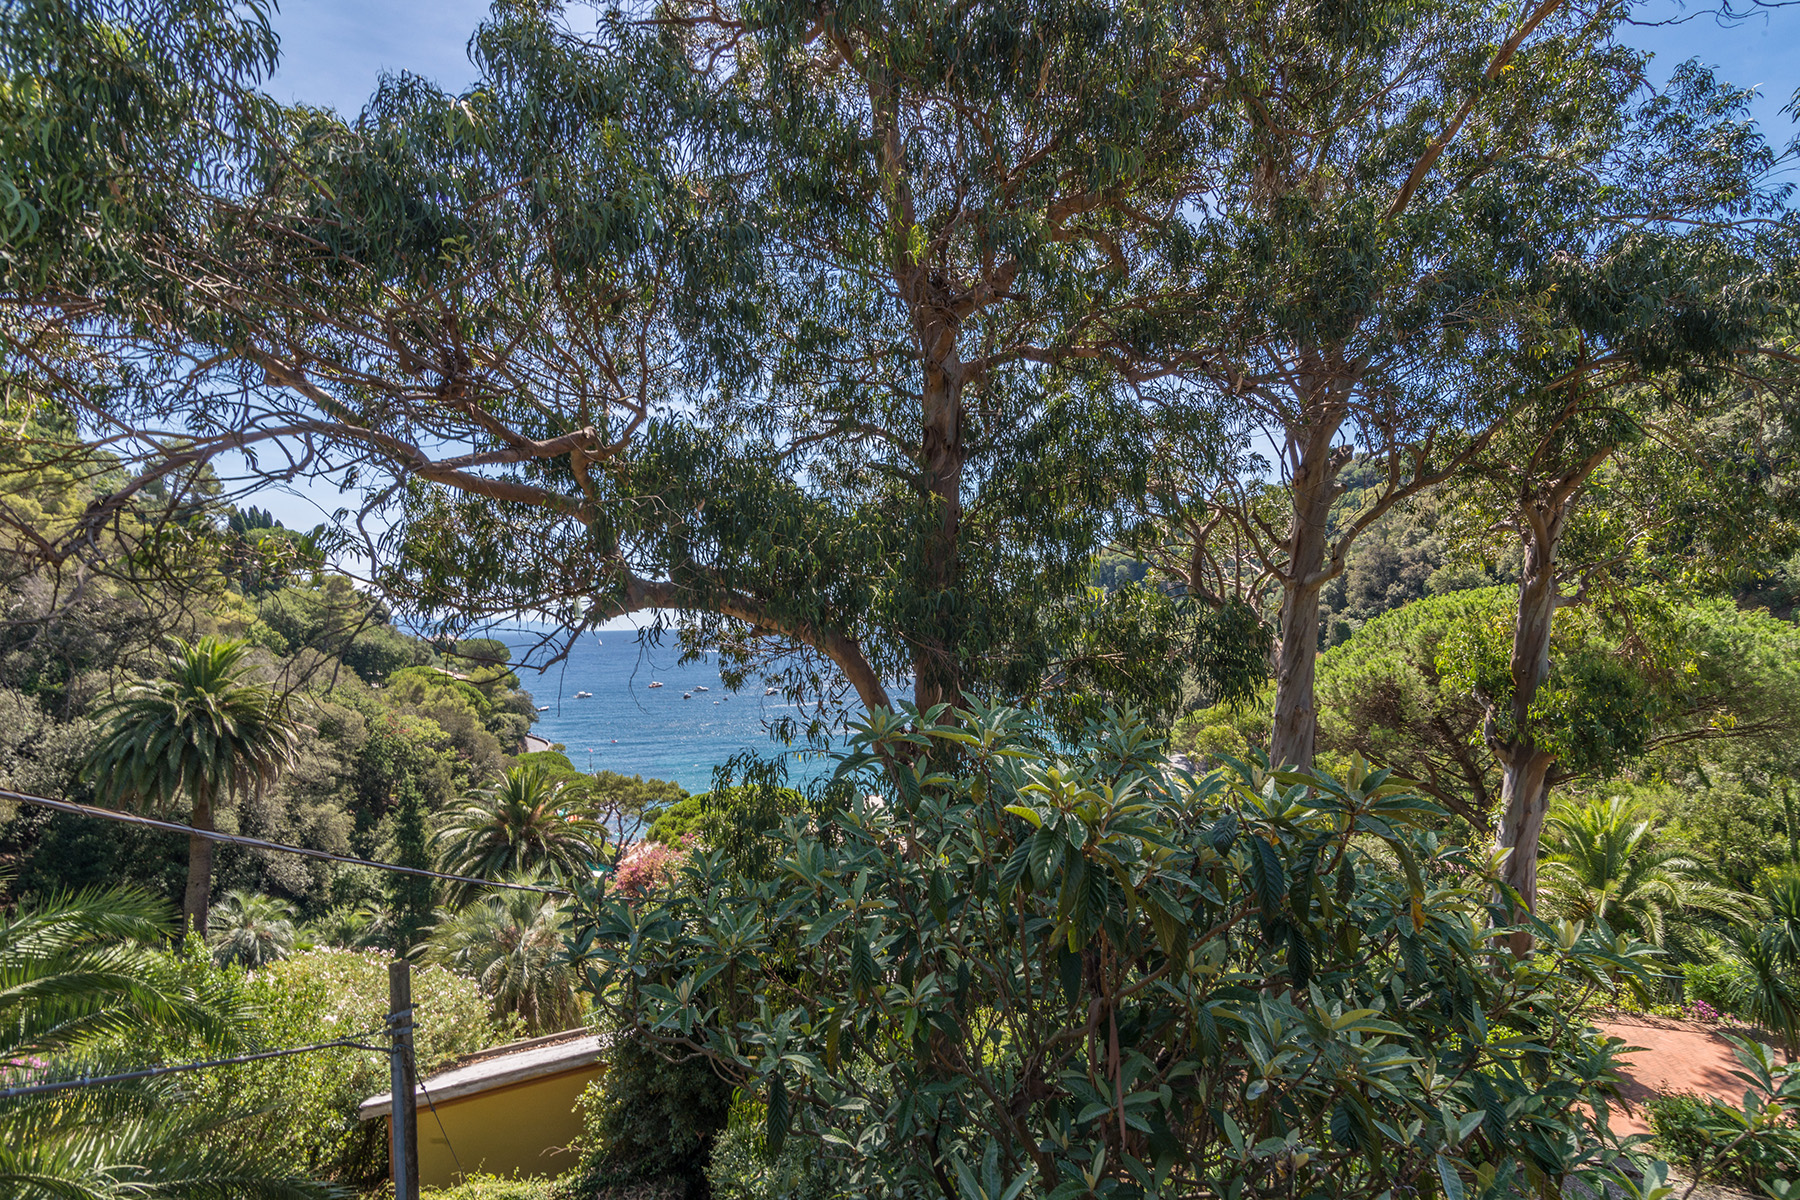 Additional photo for property listing at Magnifica villa a Paraggi nel parco di Portofino via di Paraggi Portofino, Genoa 16038 Italy